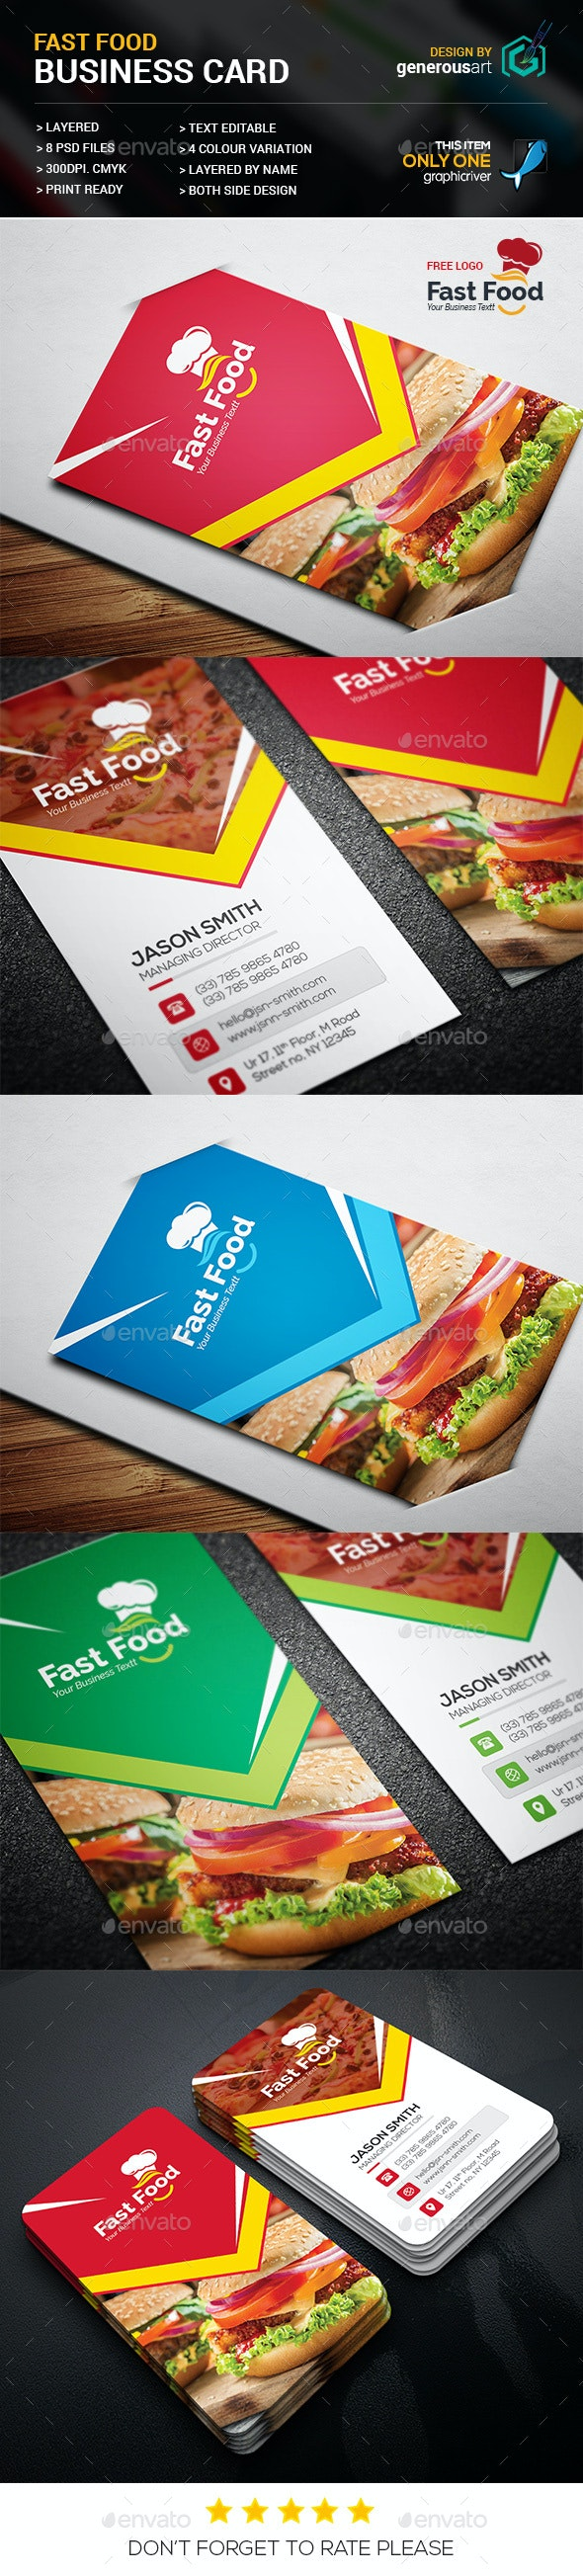 Fast Food Business Card - Business Cards Print Templates